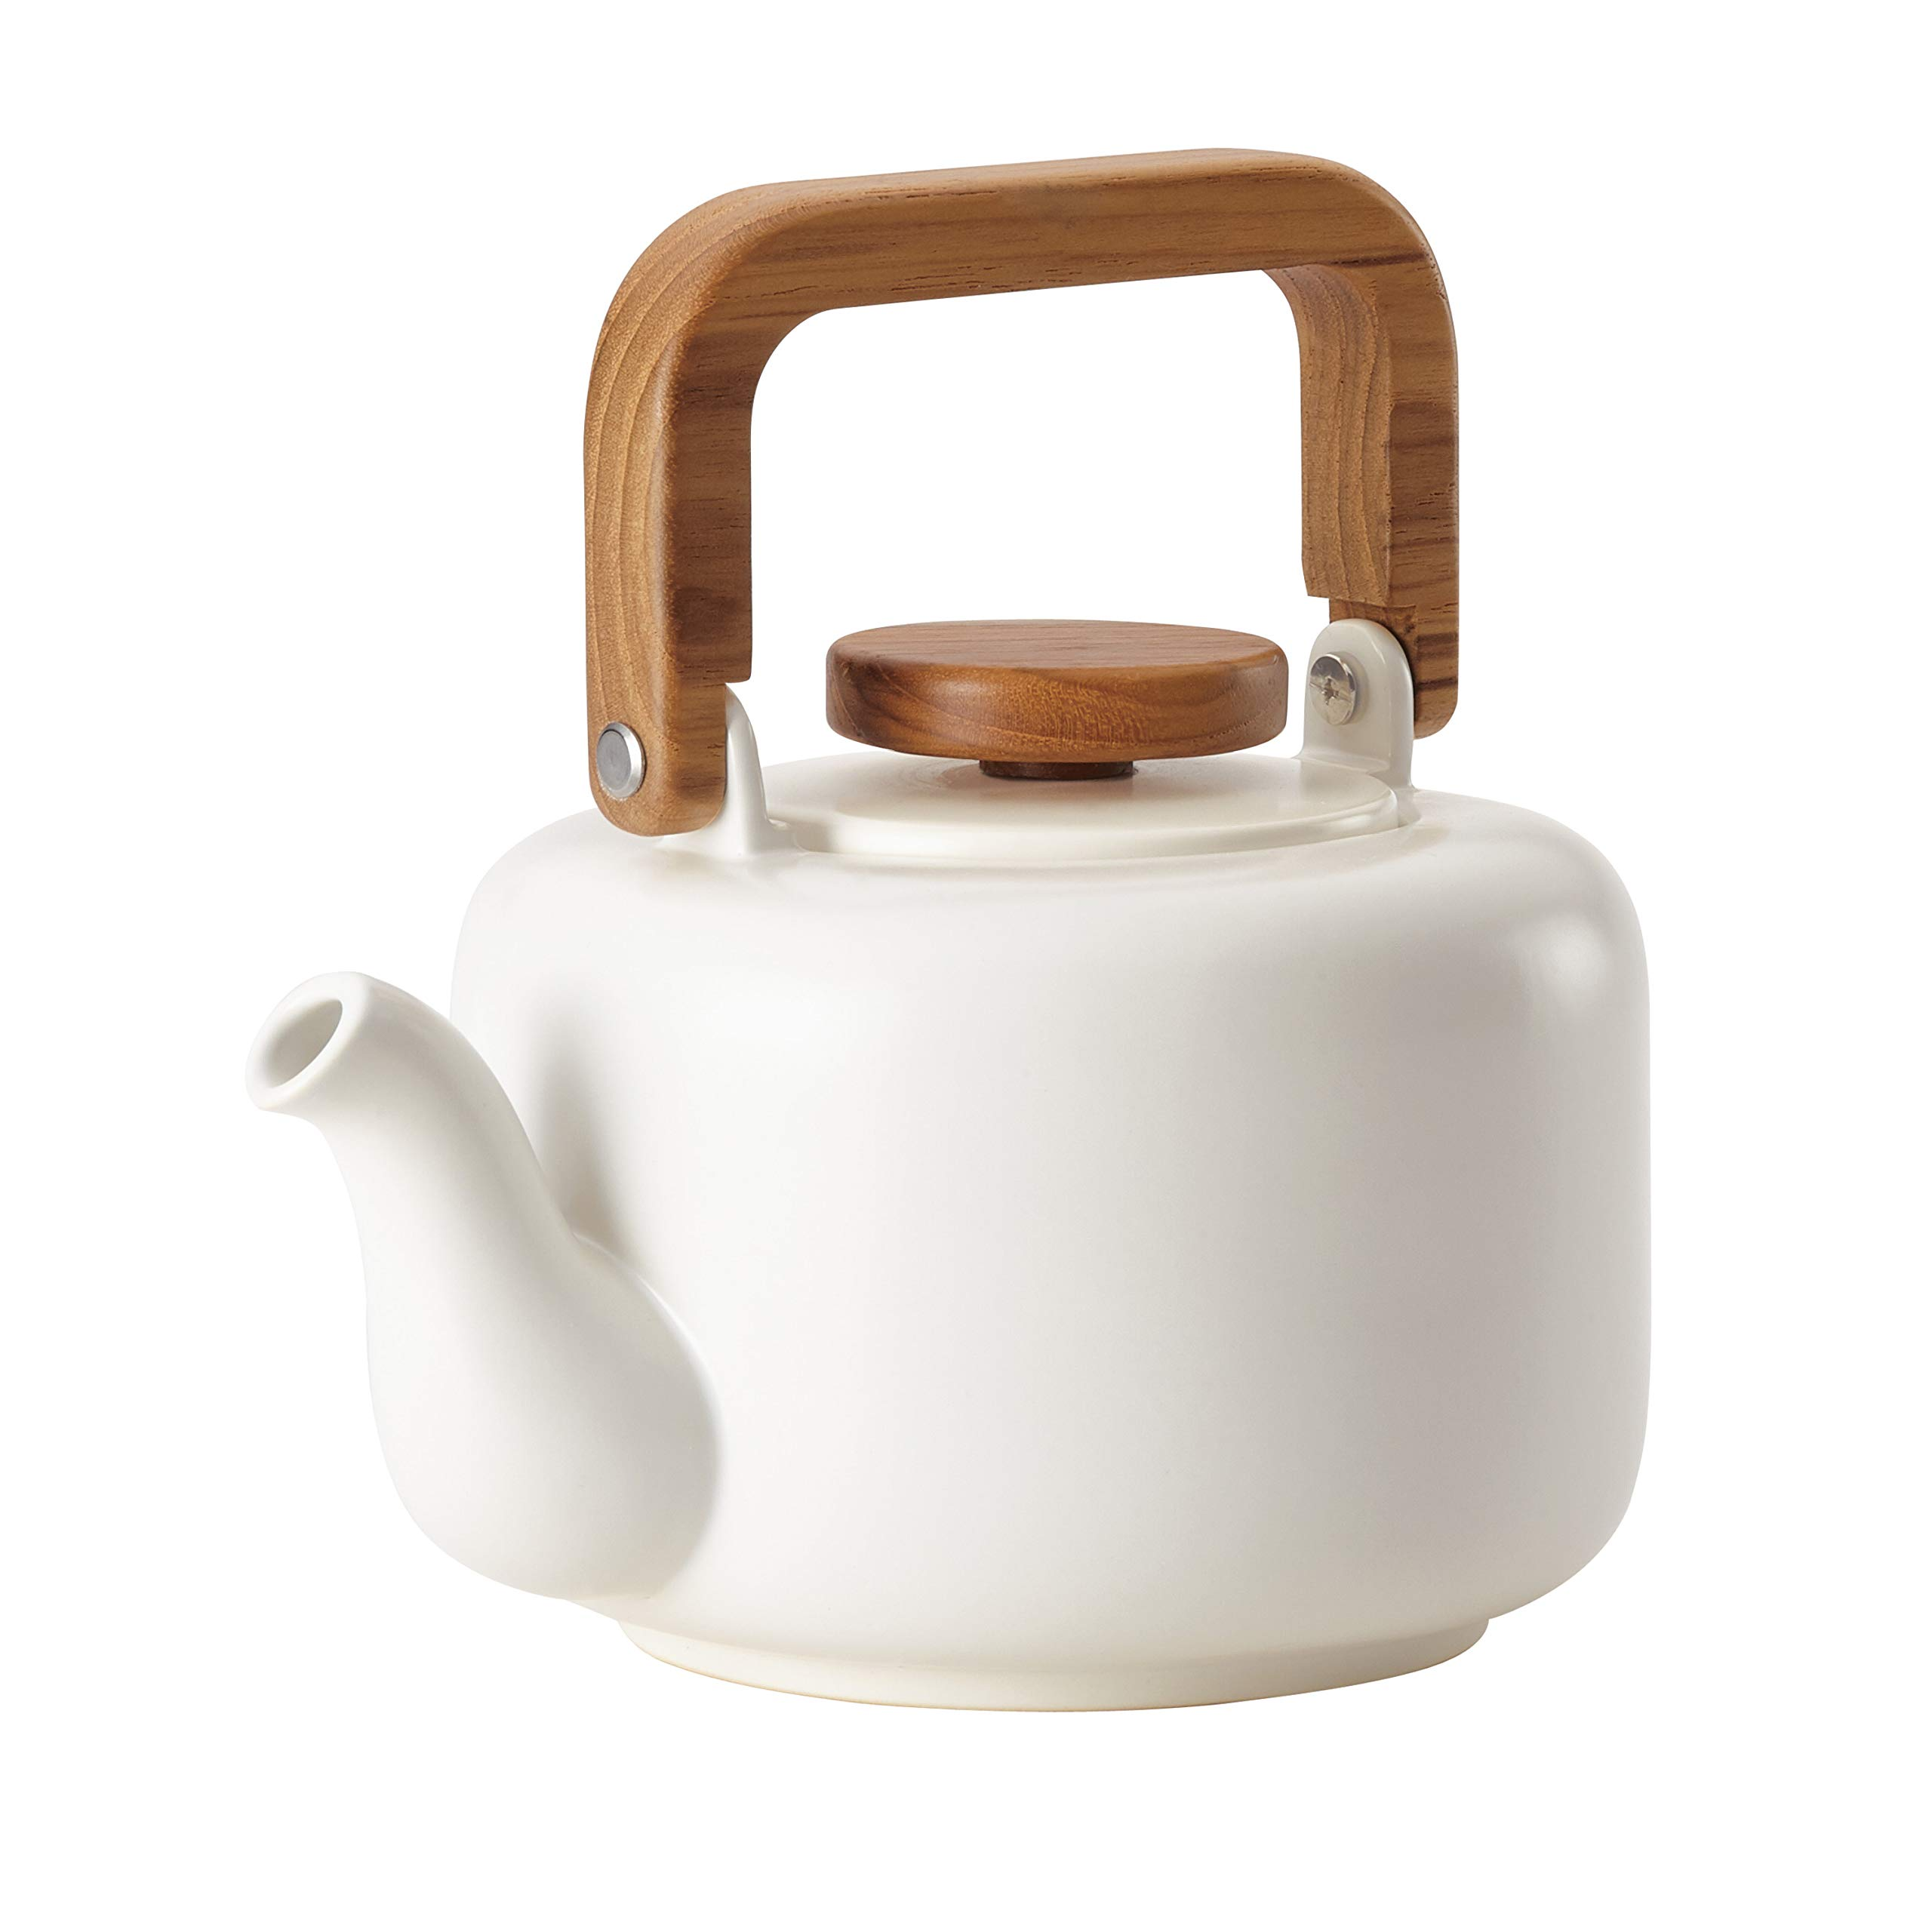 BonJour Ceramic Coffee and Tea 4-Cup Ceramic Teapot with Infuser, Matte White